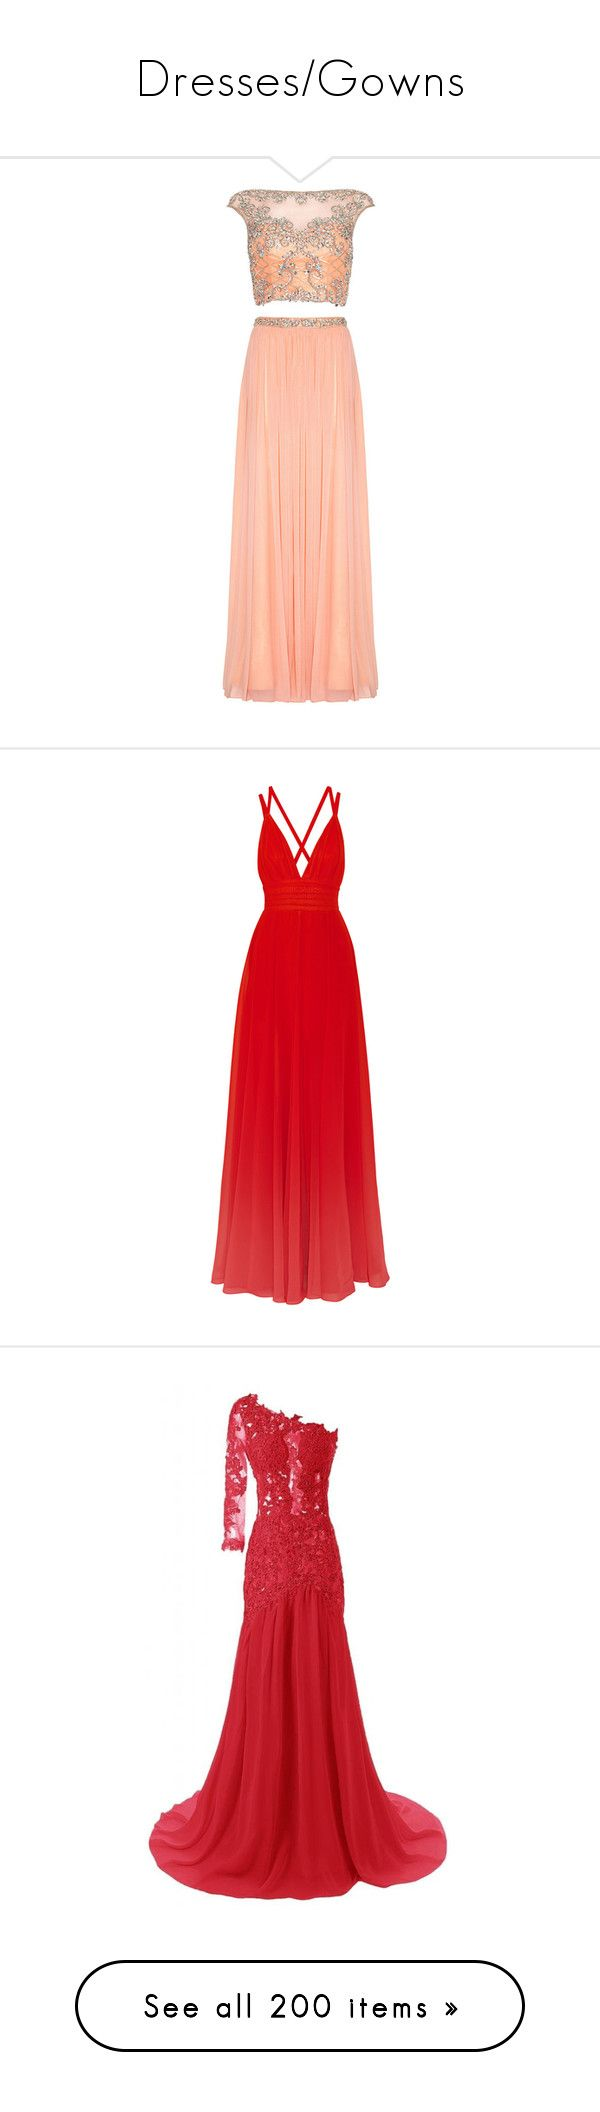 """""""Dresses/Gowns"""" by smollllbeannnn ❤ liked on Polyvore featuring dresses, gowns, red ball gown, prom gowns, prom ball gowns, coral gown, red prom gowns, long dresses, vestidos and elie saab"""